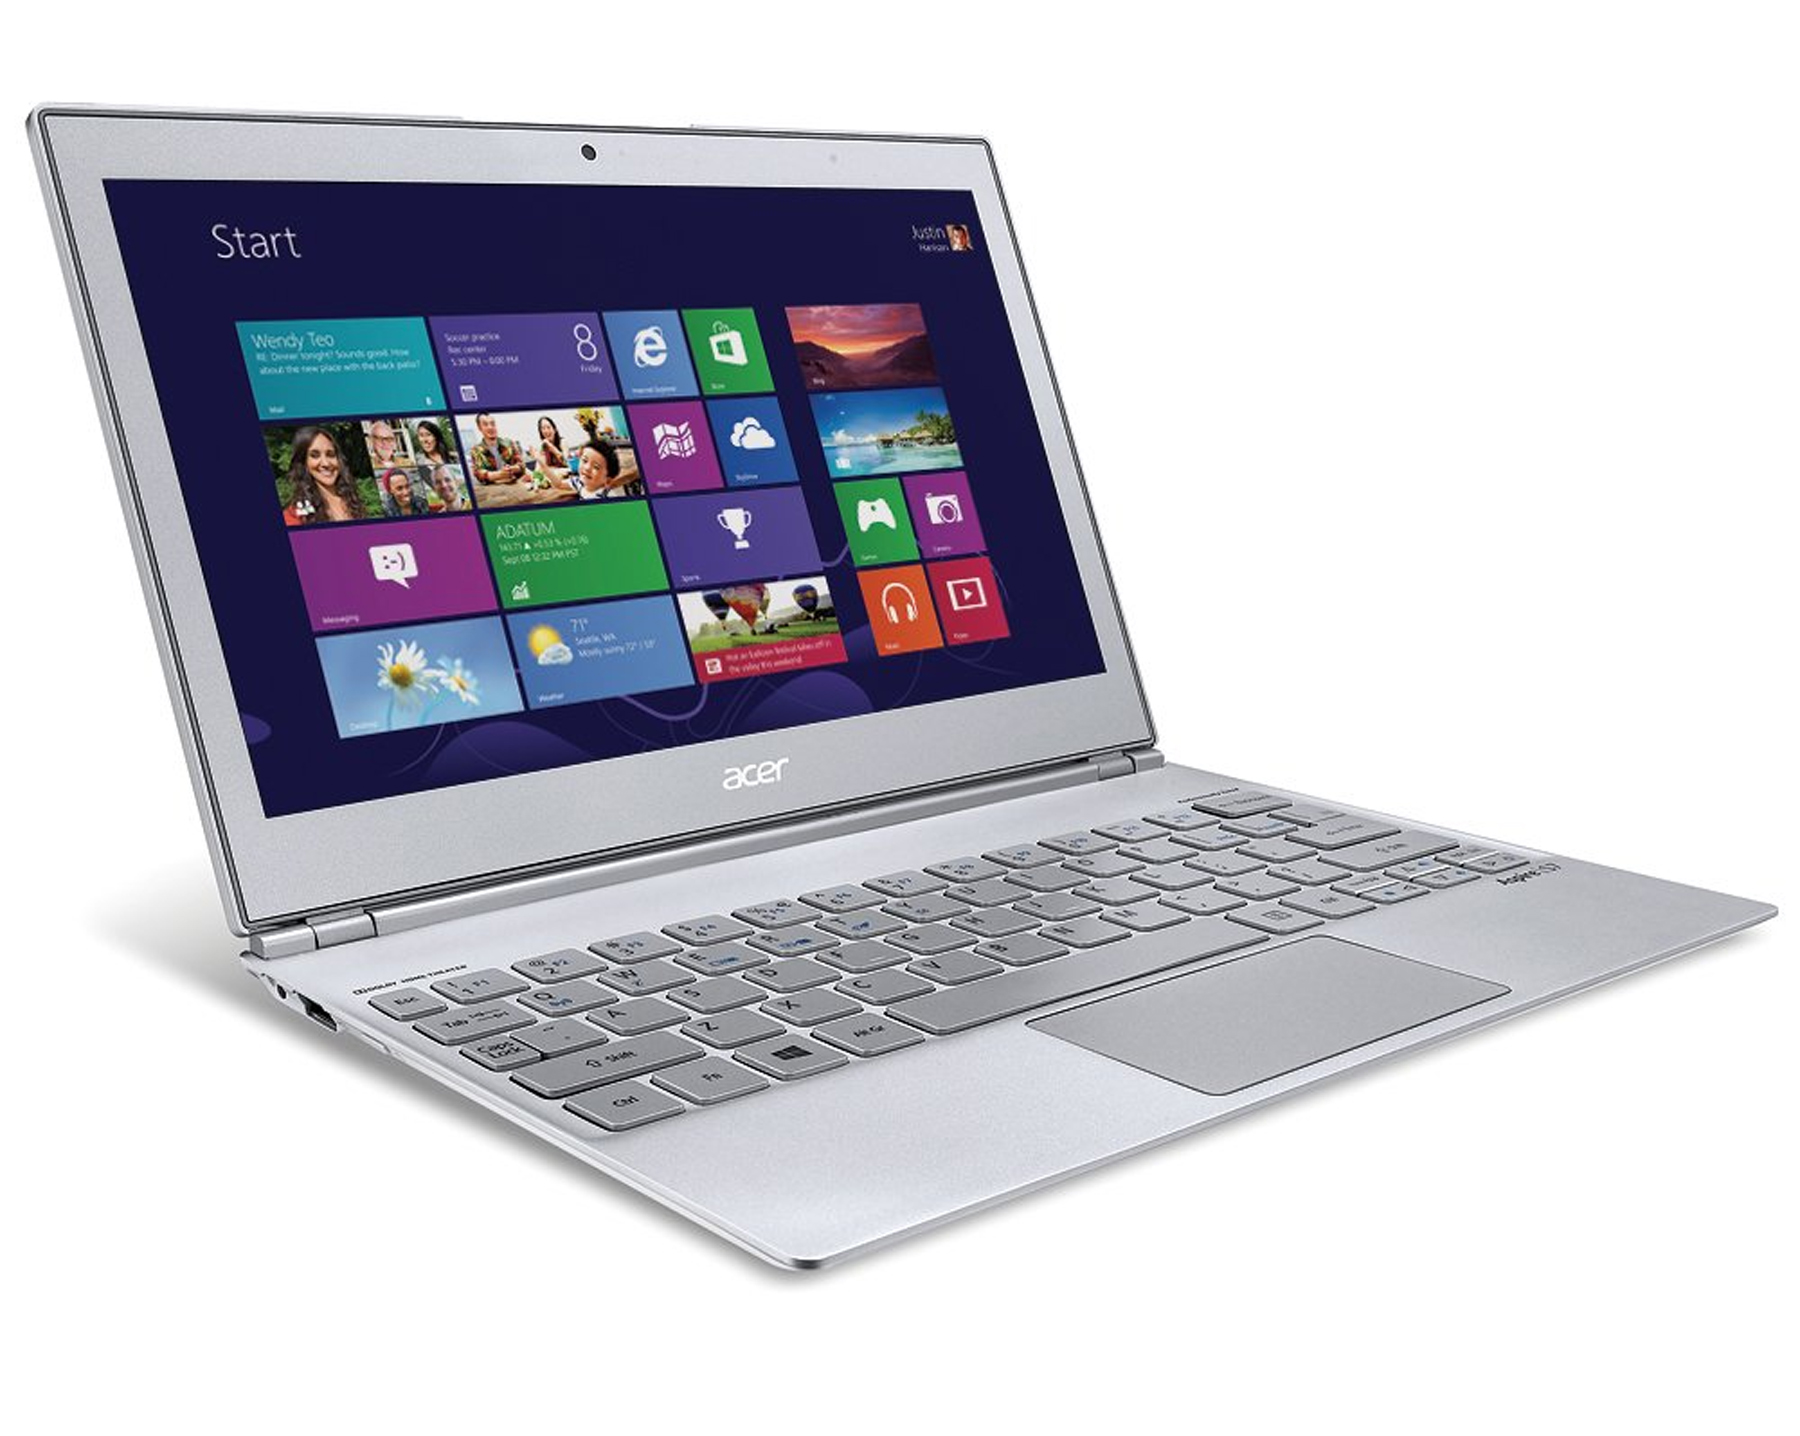 Harga Laptop Acer Windows Seri Acer 10E